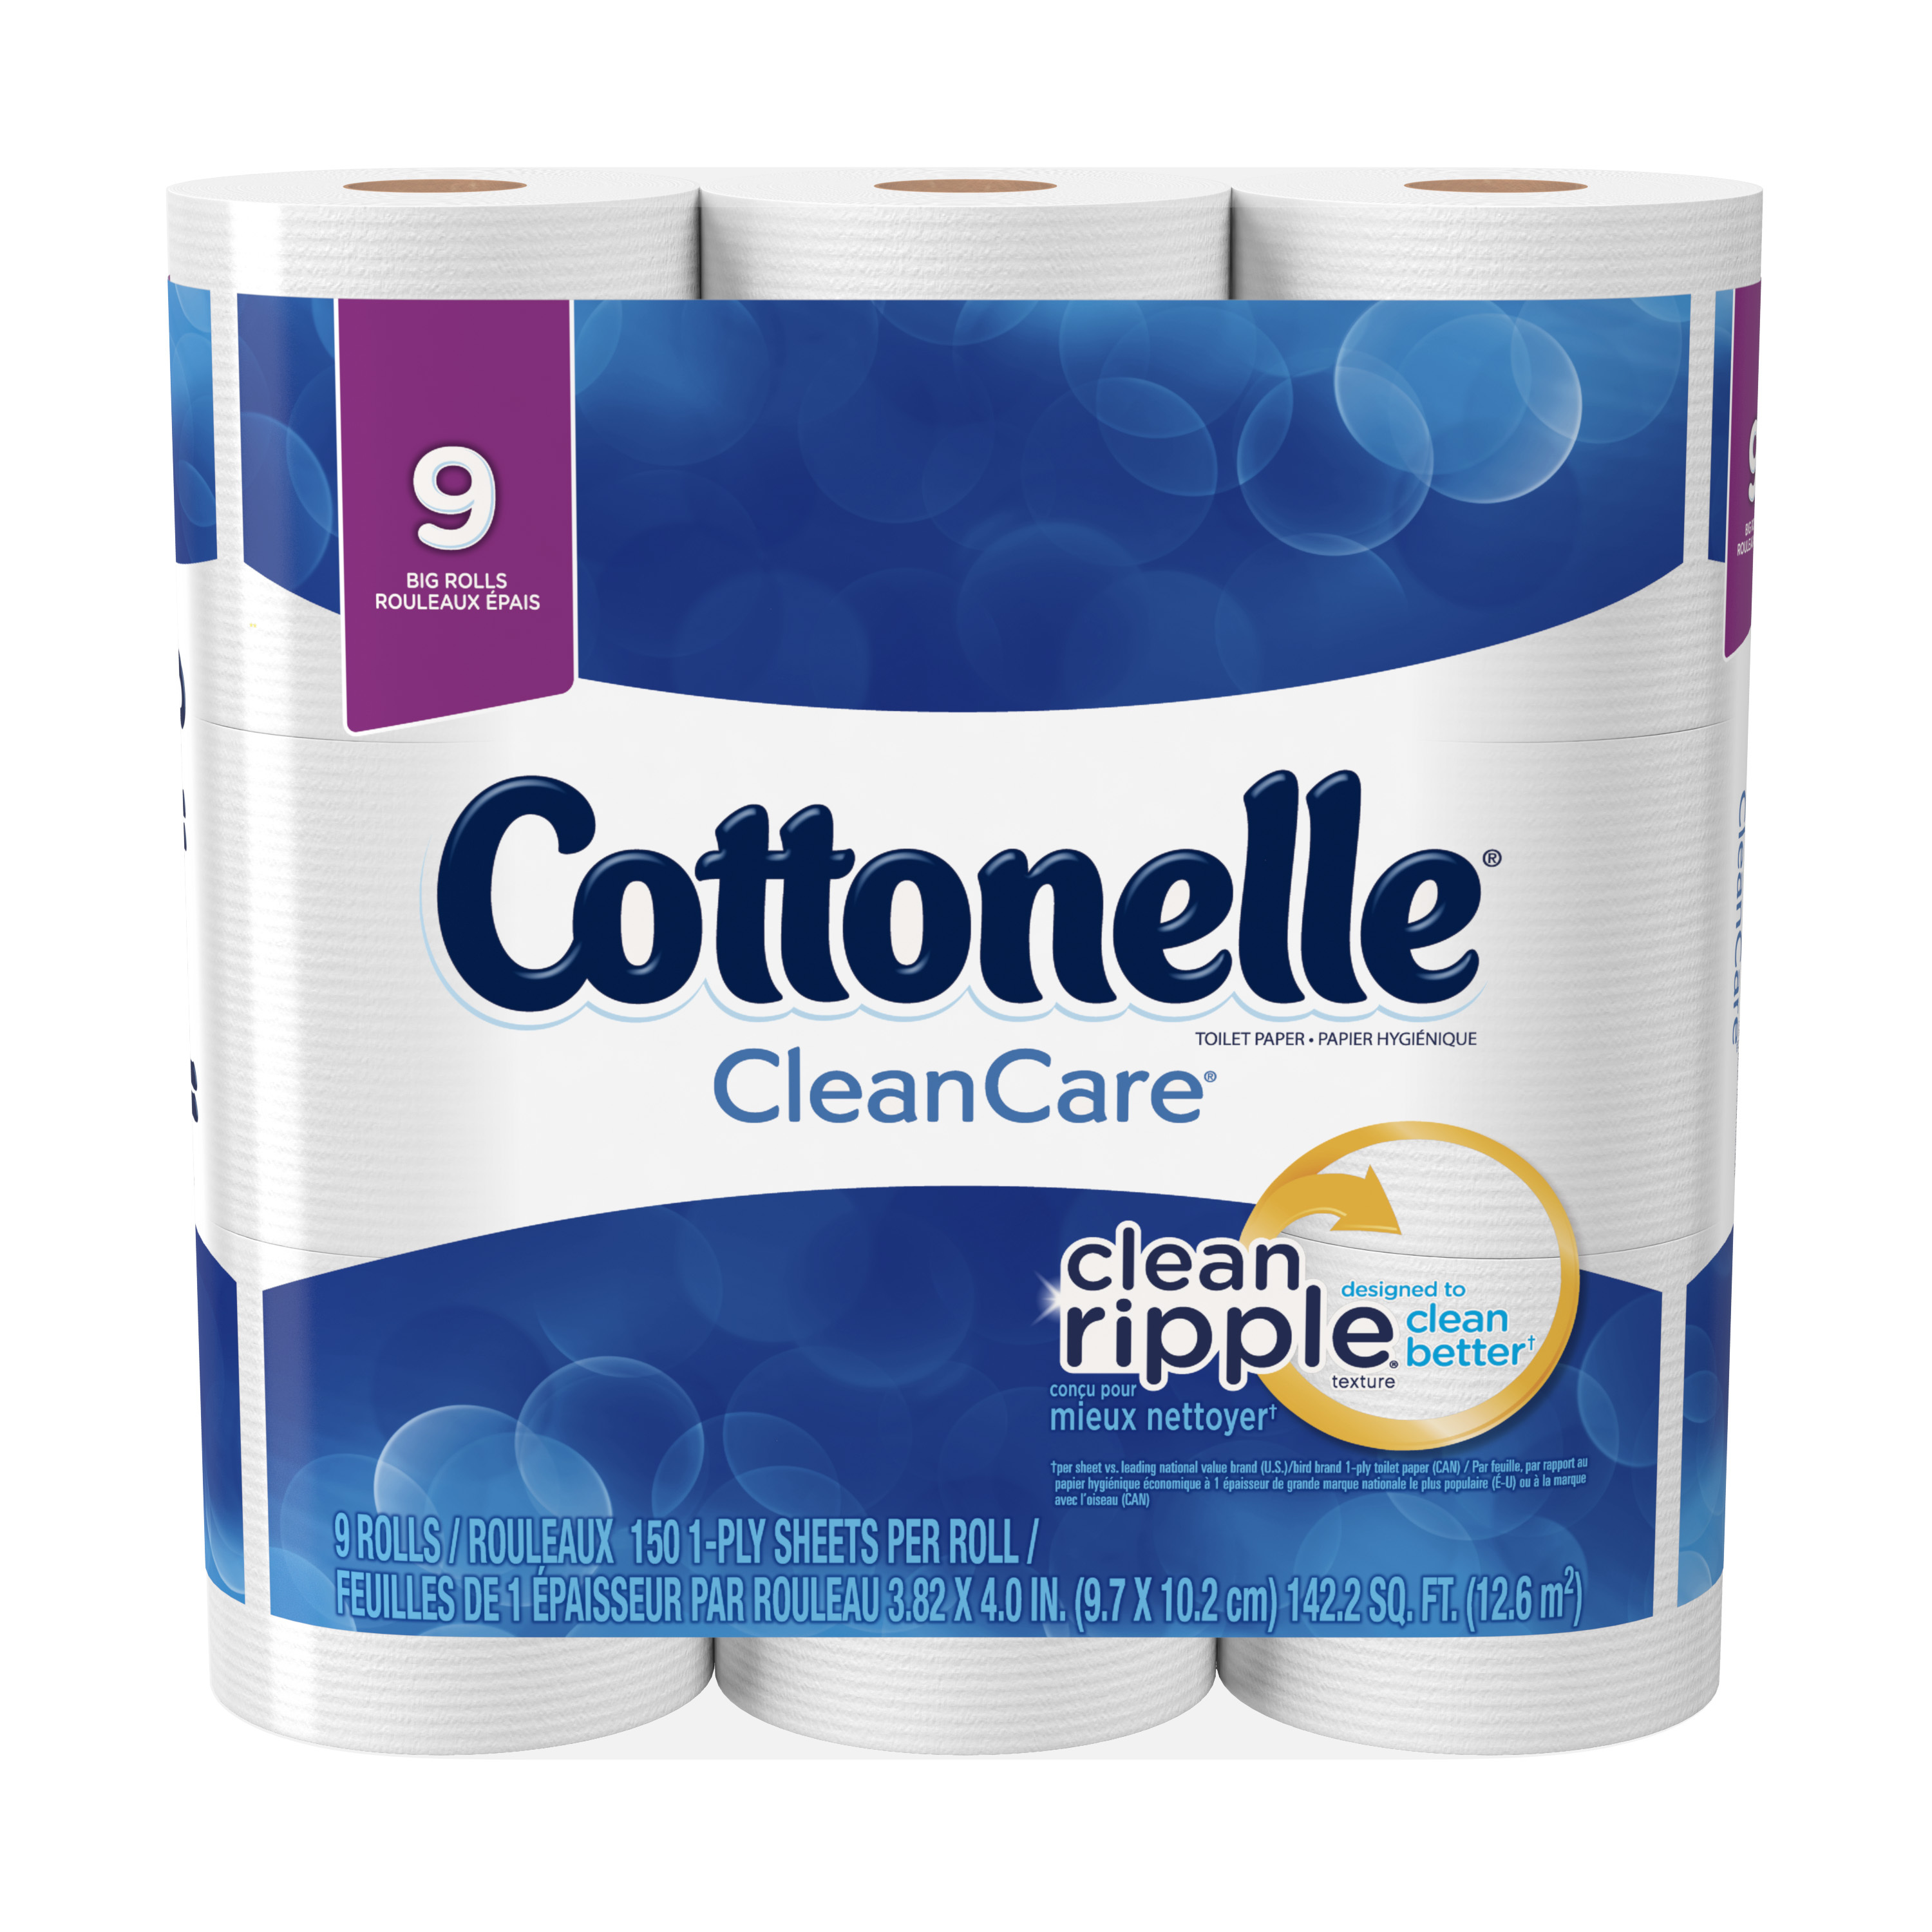 Cottonelle Toilet Paper, CleanCare, 9 Big Rolls